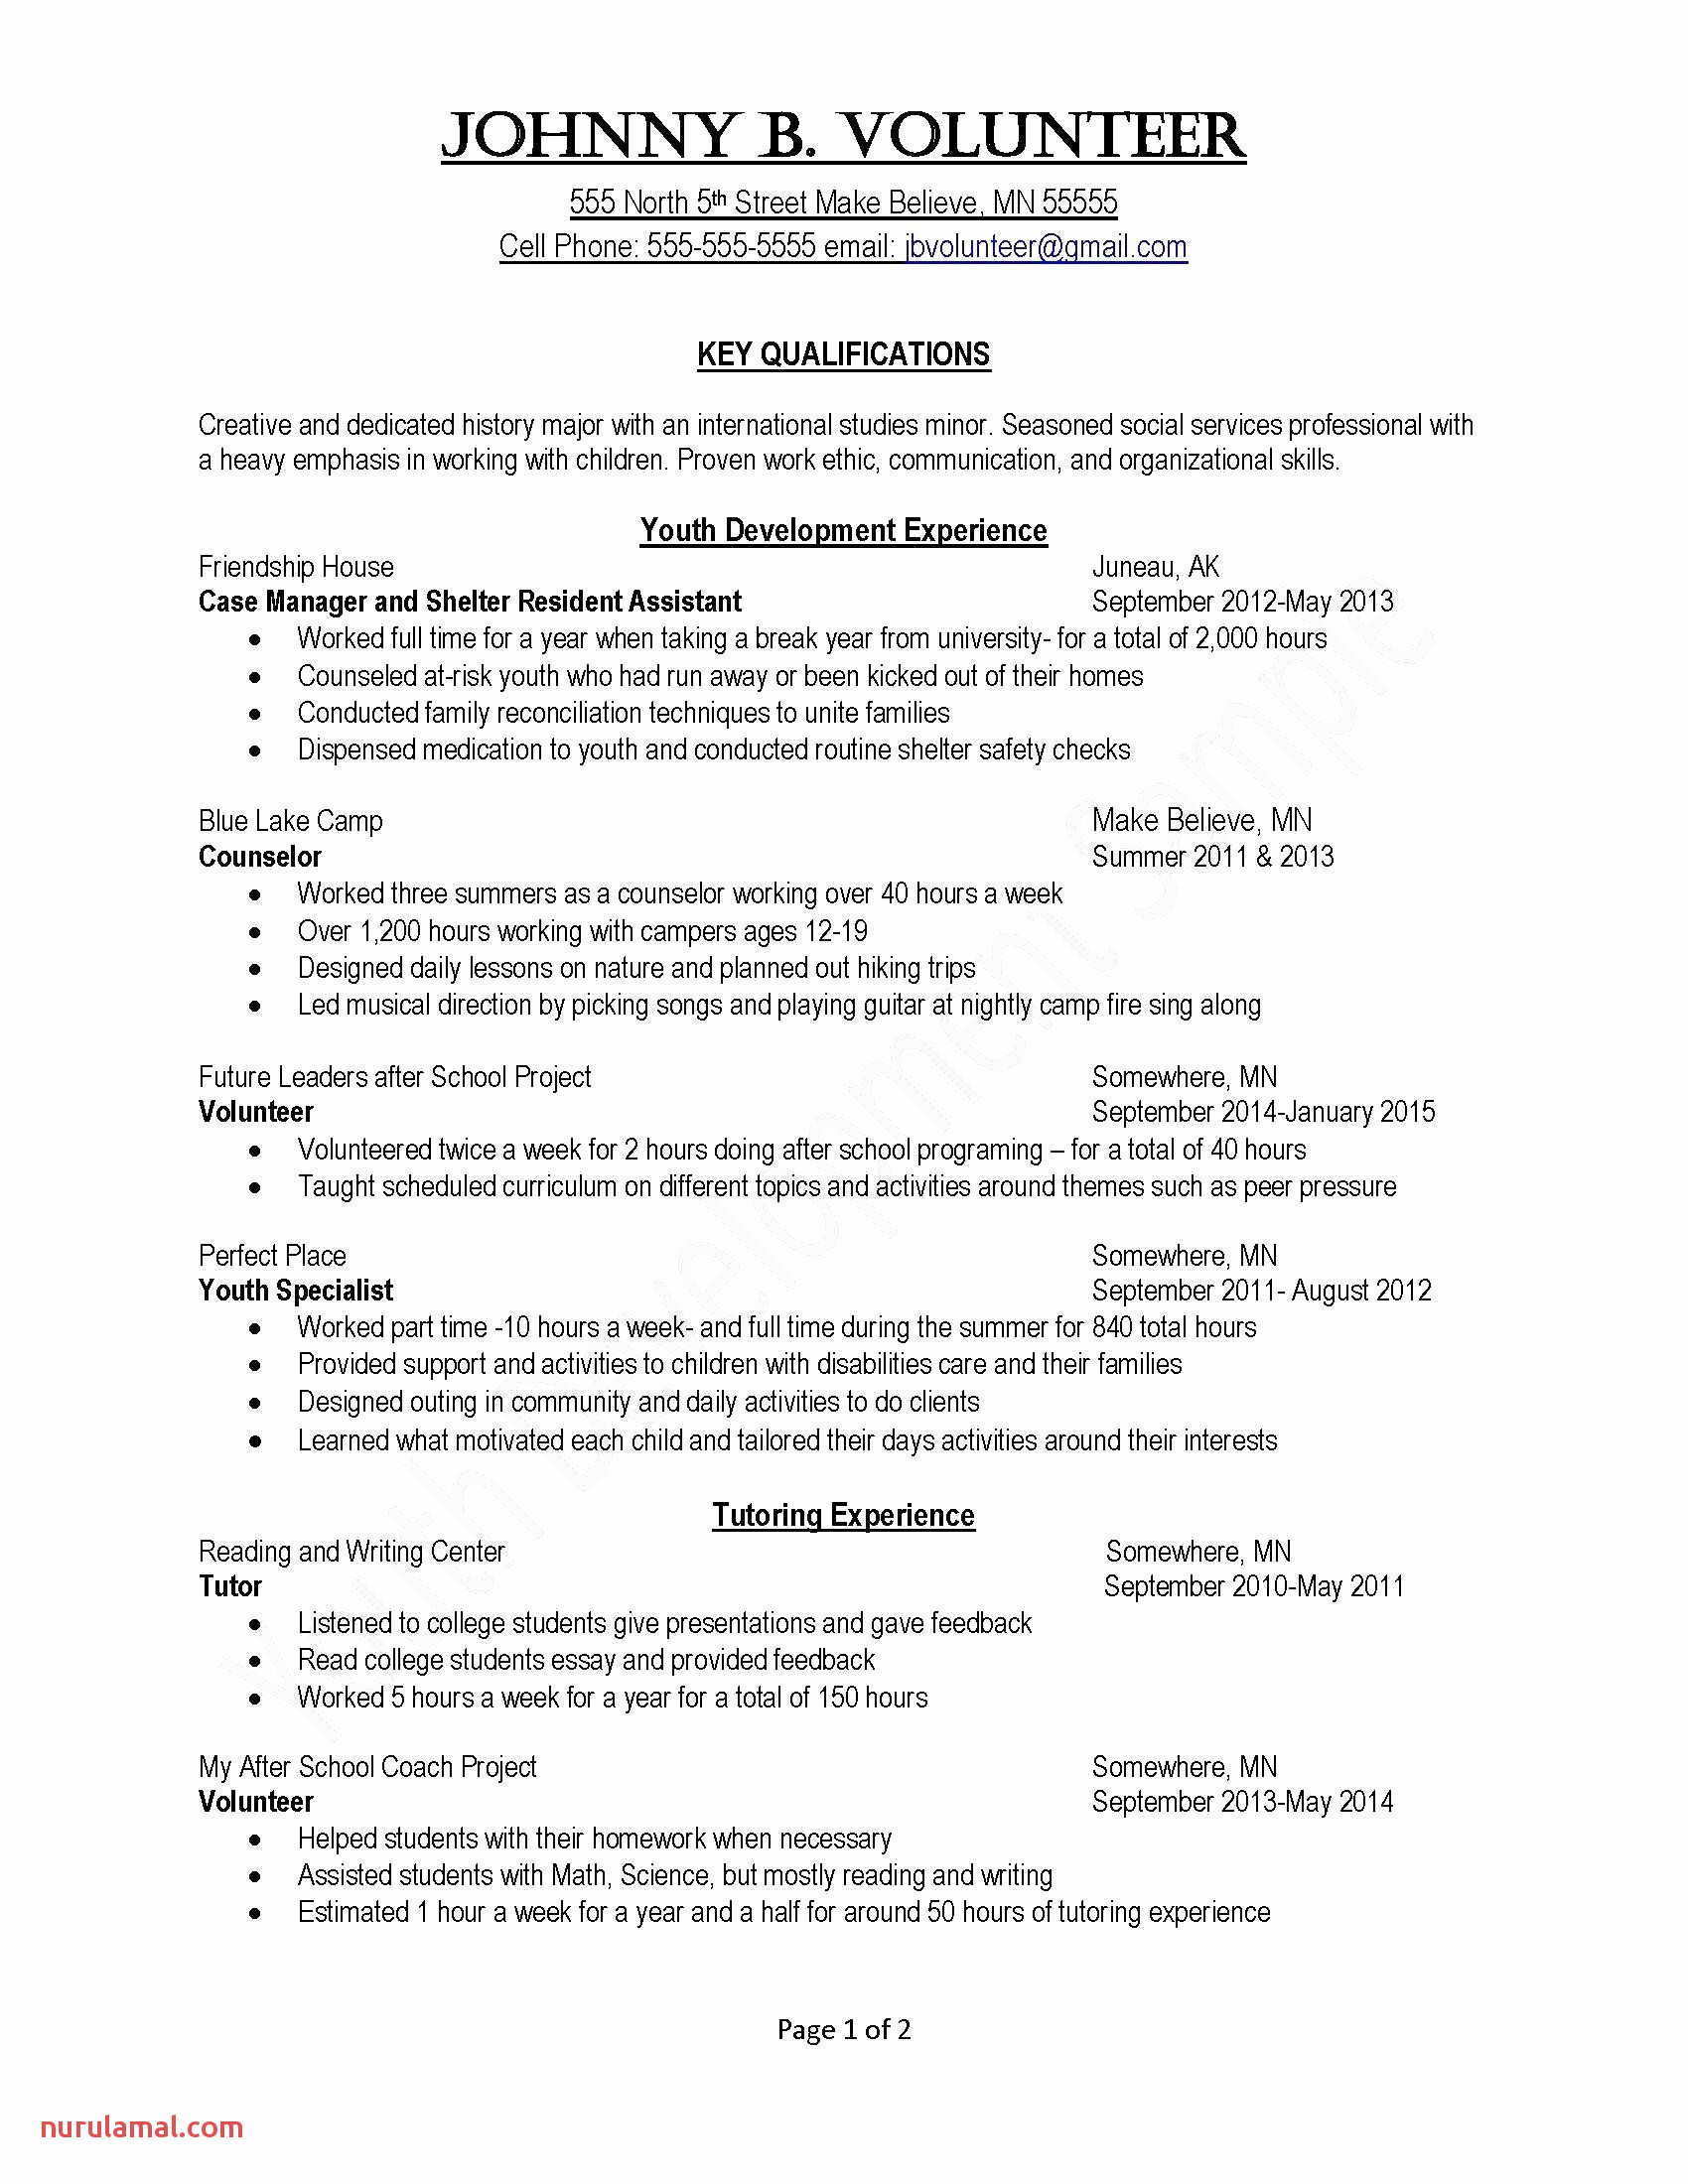 Papercraft Letters How to Do Cover Letter Best Subpoena